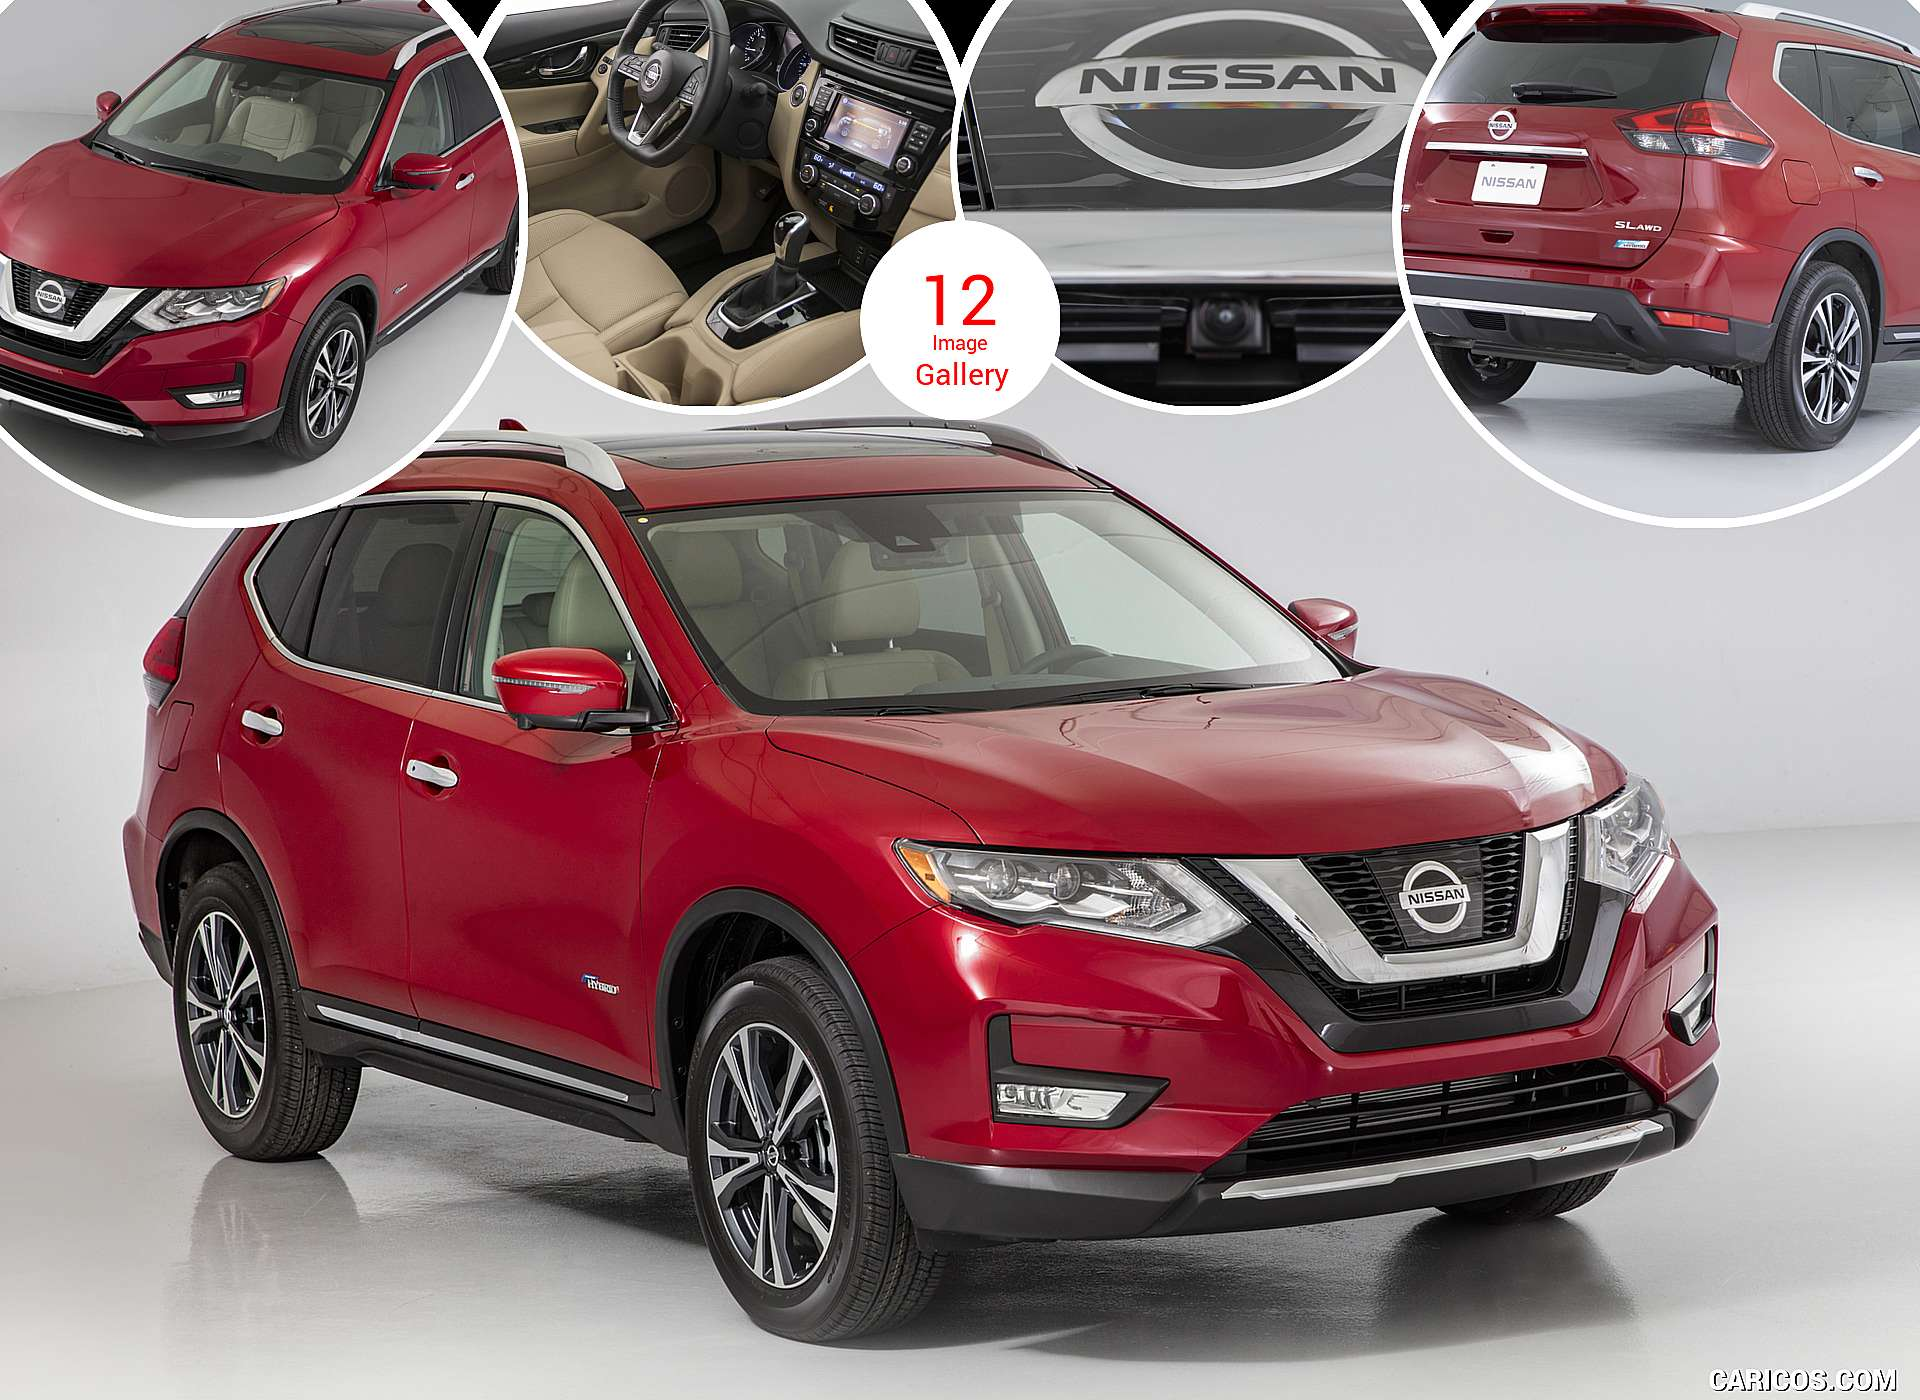 2017 nissan rogue hybrid. Black Bedroom Furniture Sets. Home Design Ideas